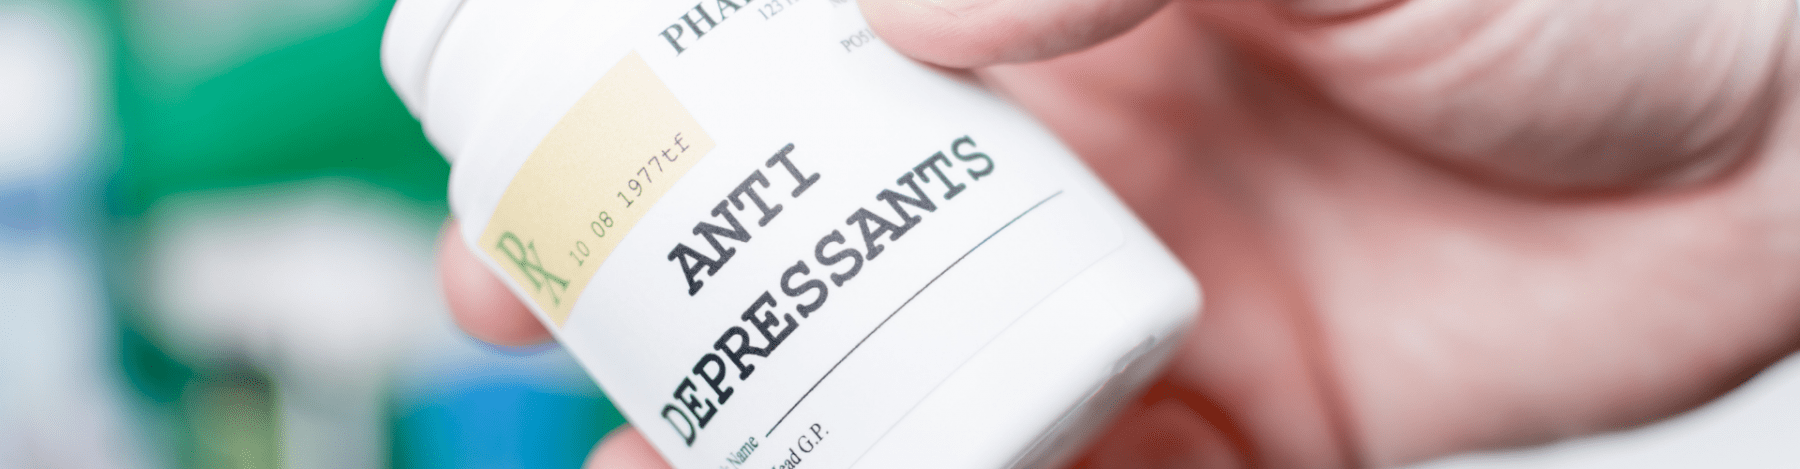 Hair loss can be caused by medication such as anti depressants